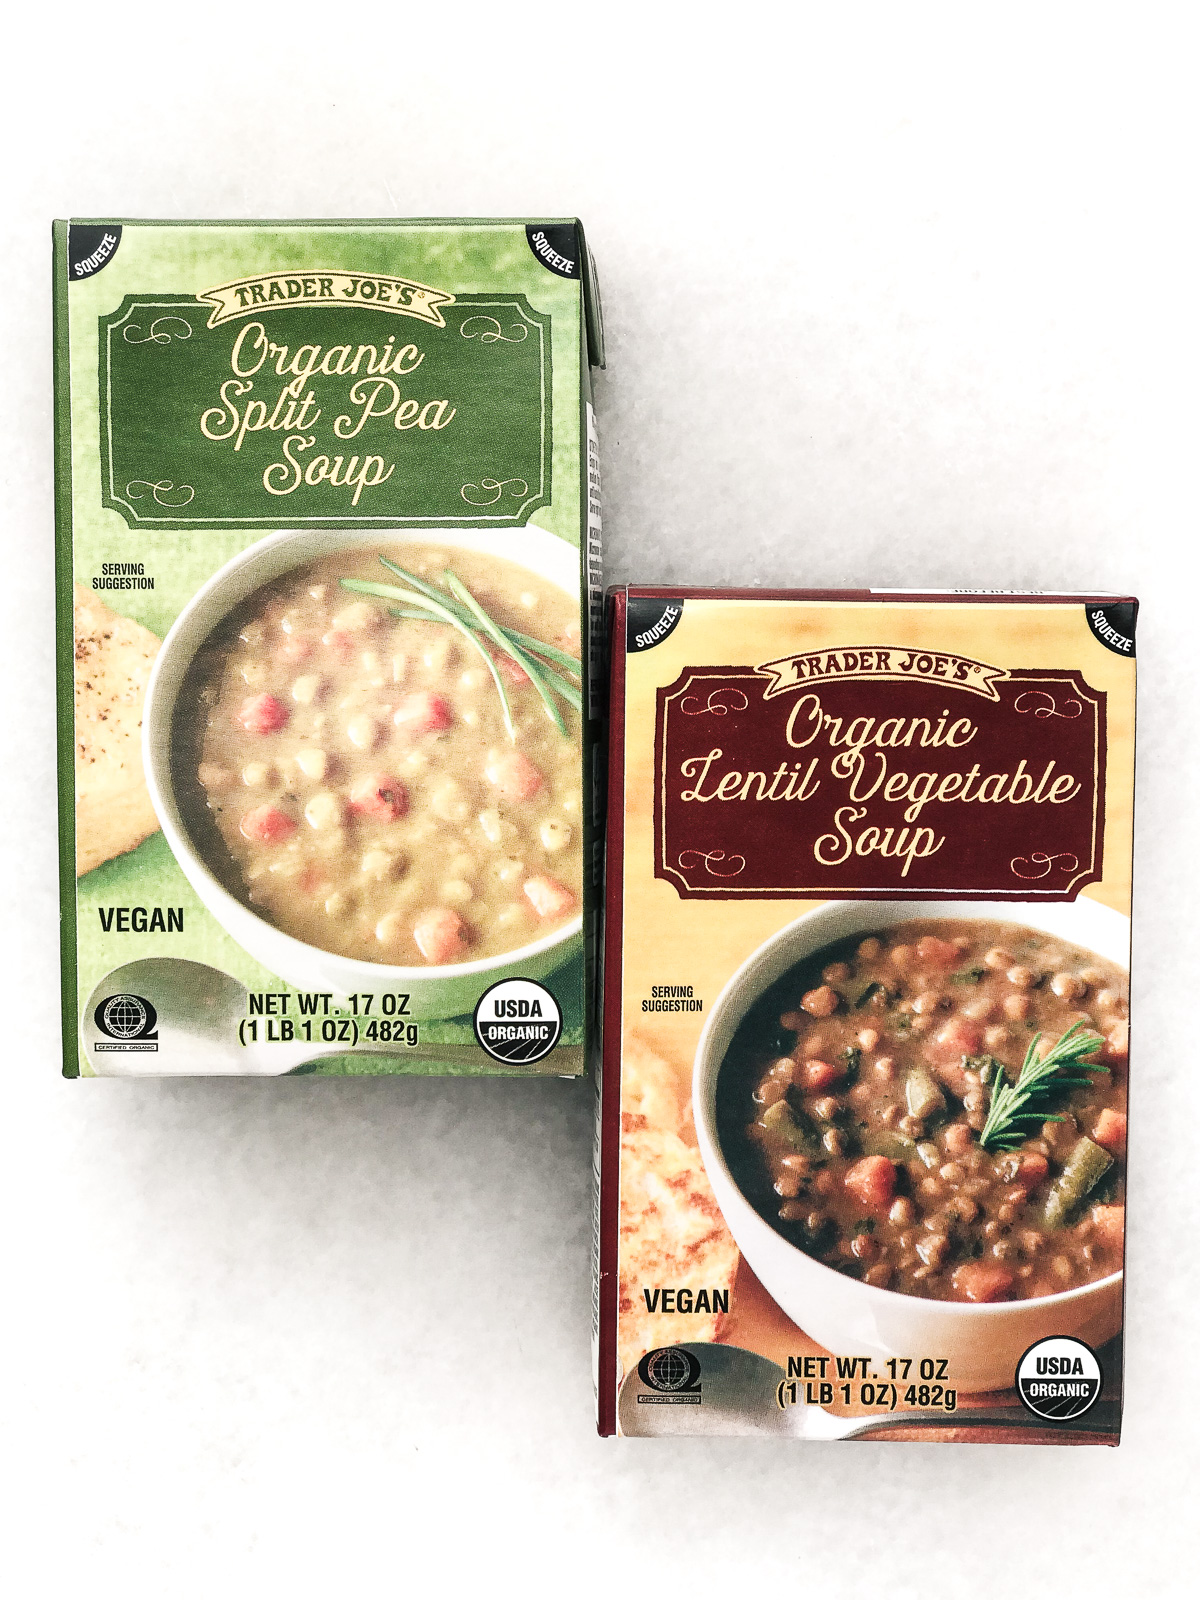 Trader Joe's packaged soups